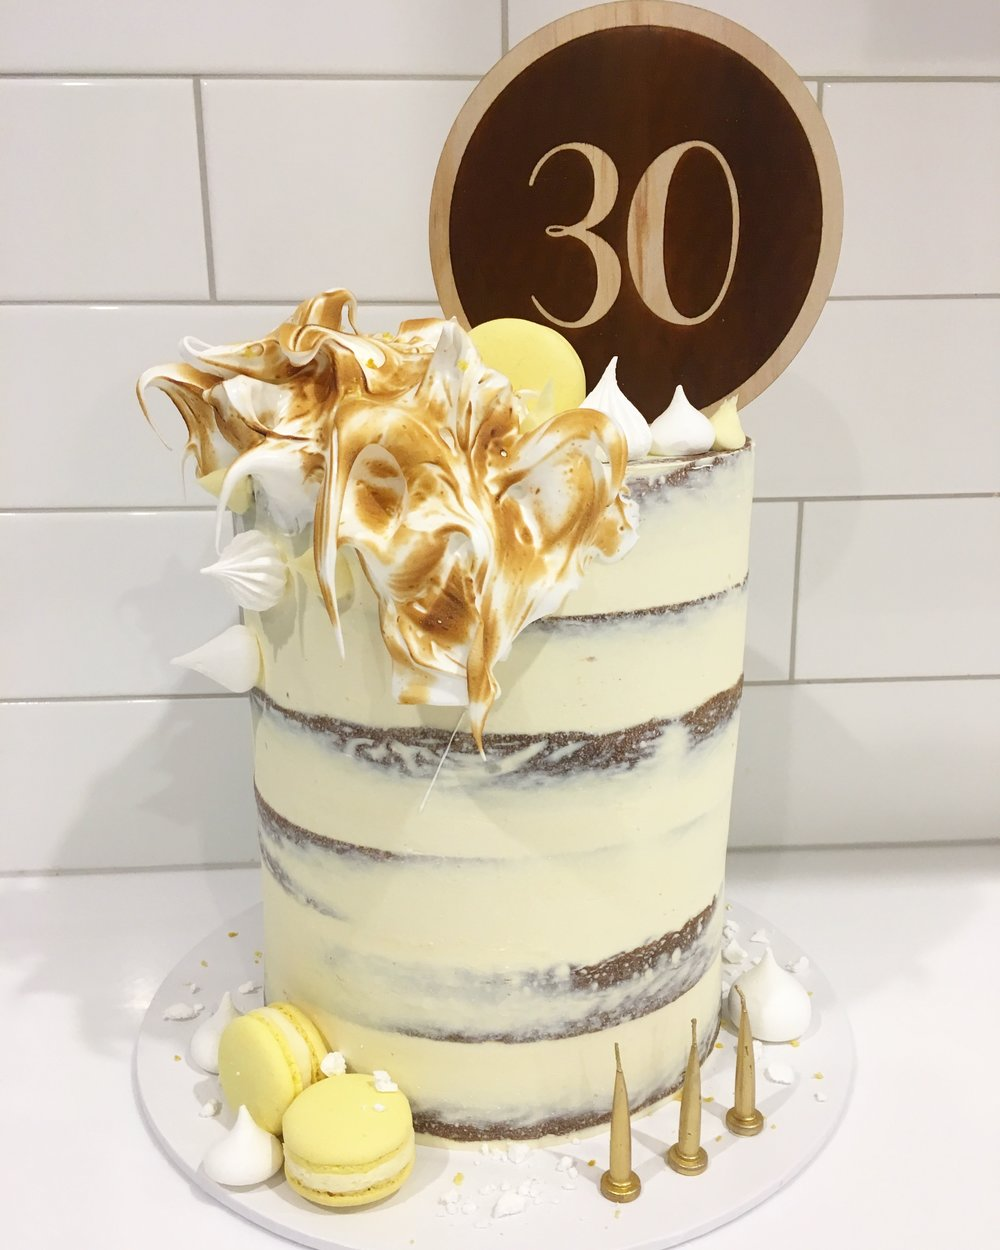 Naked Cake with Scorched Meringue